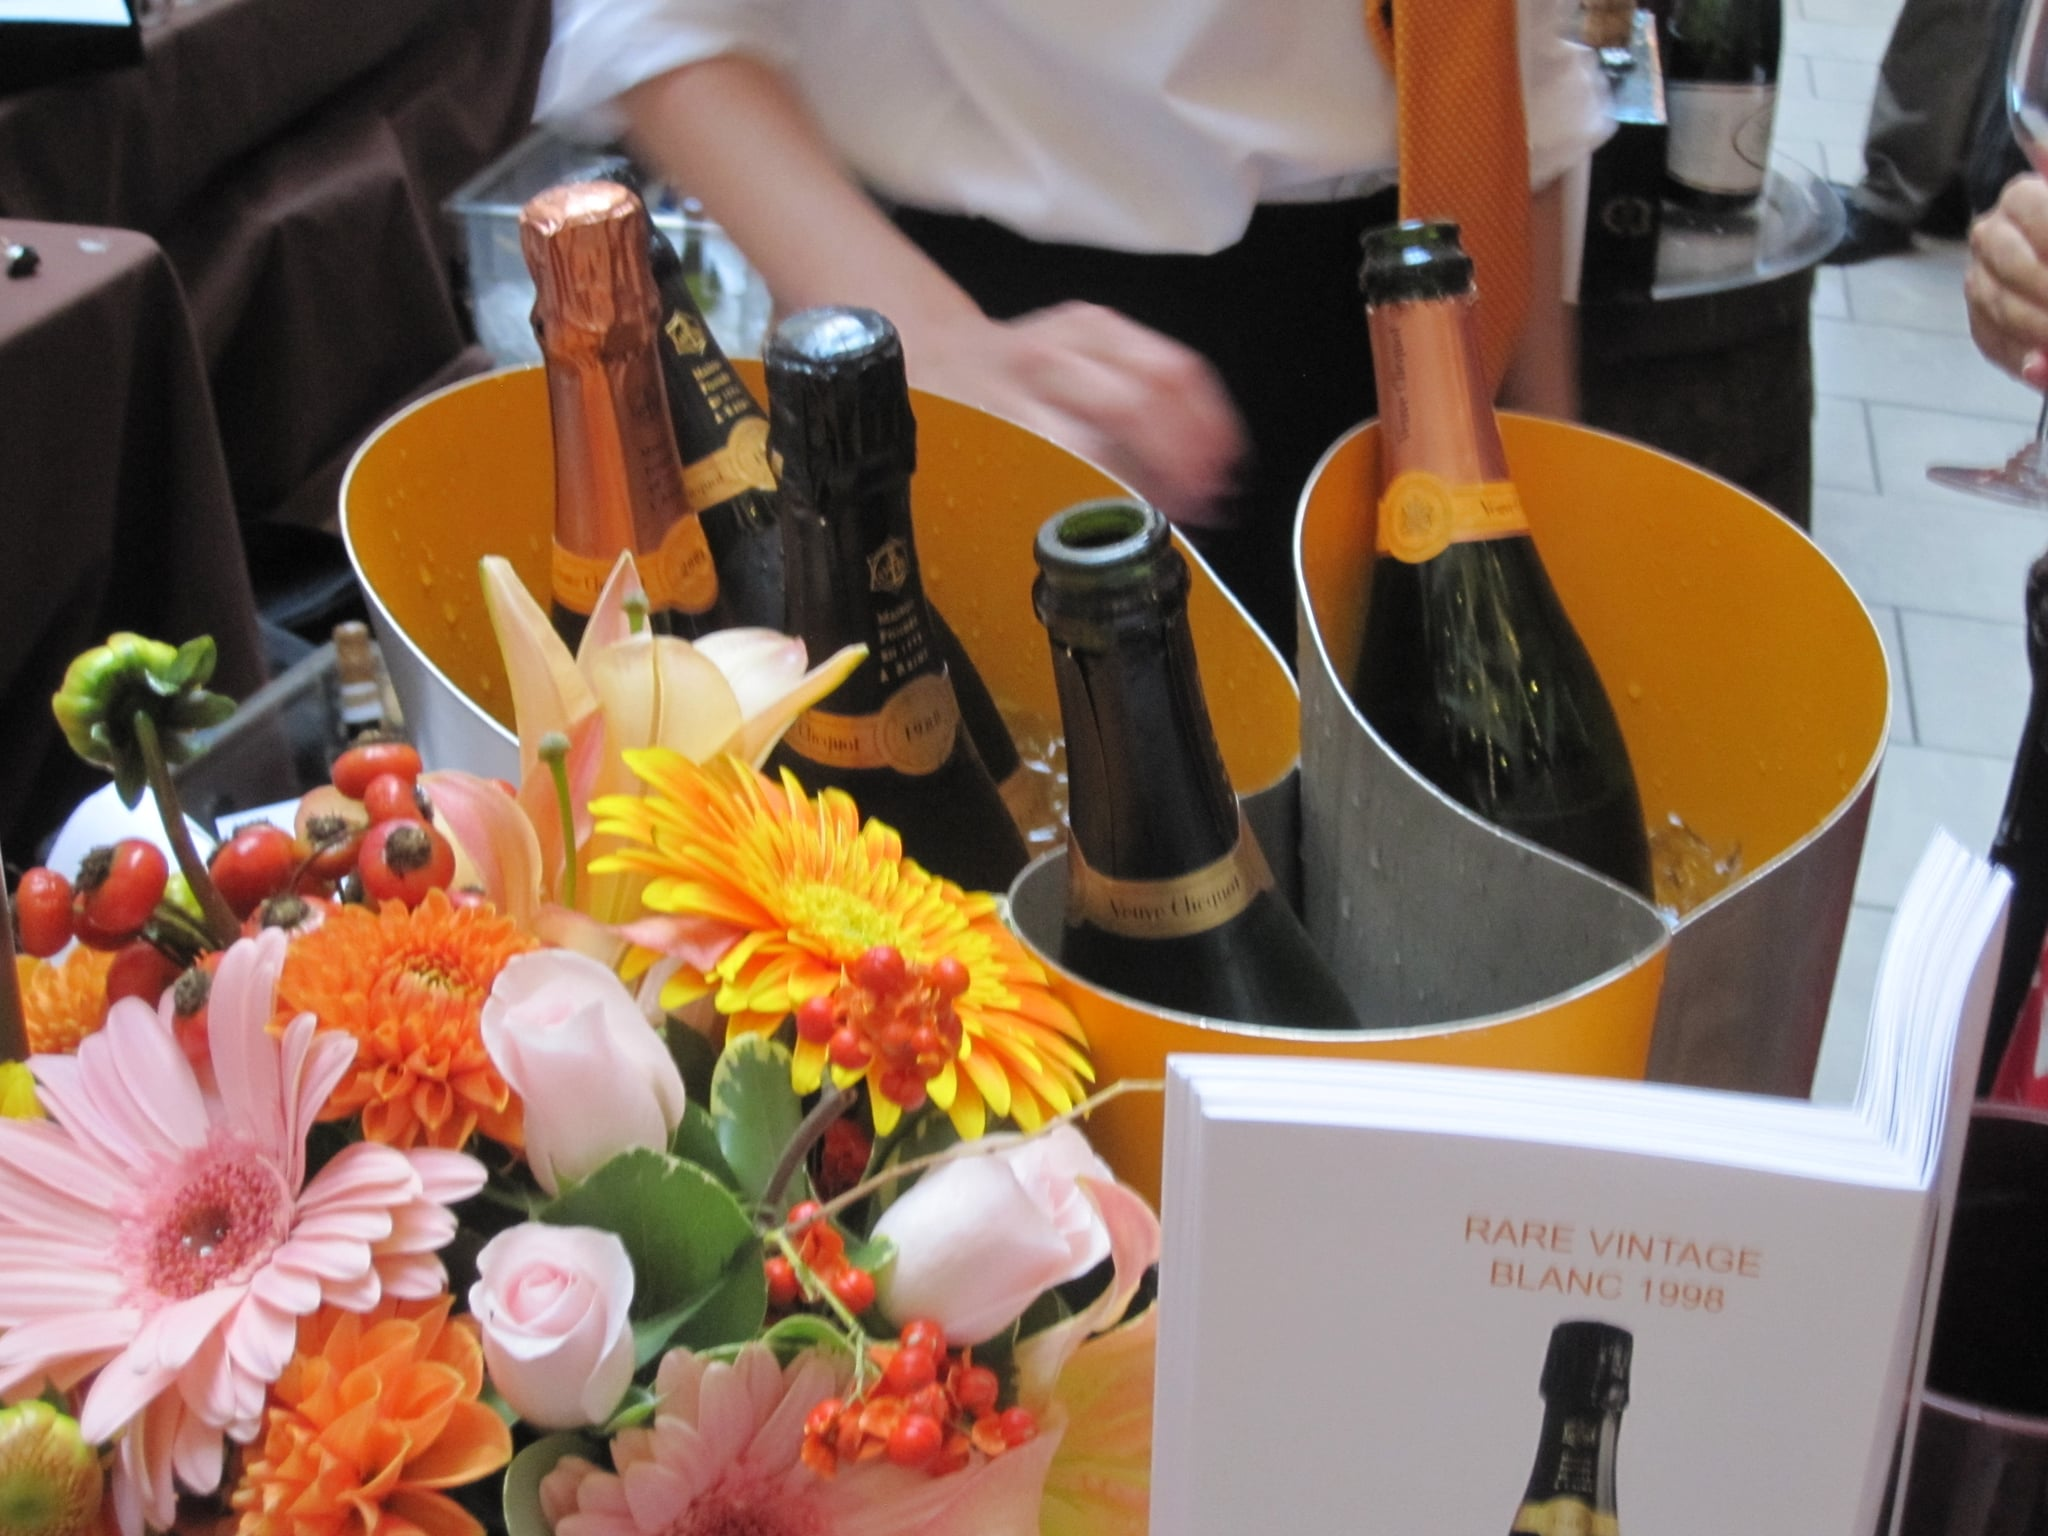 Two of Veuve Clicquot's wines were featured: the current release pink Rosé and the '98 vintage. Both were exceptional.